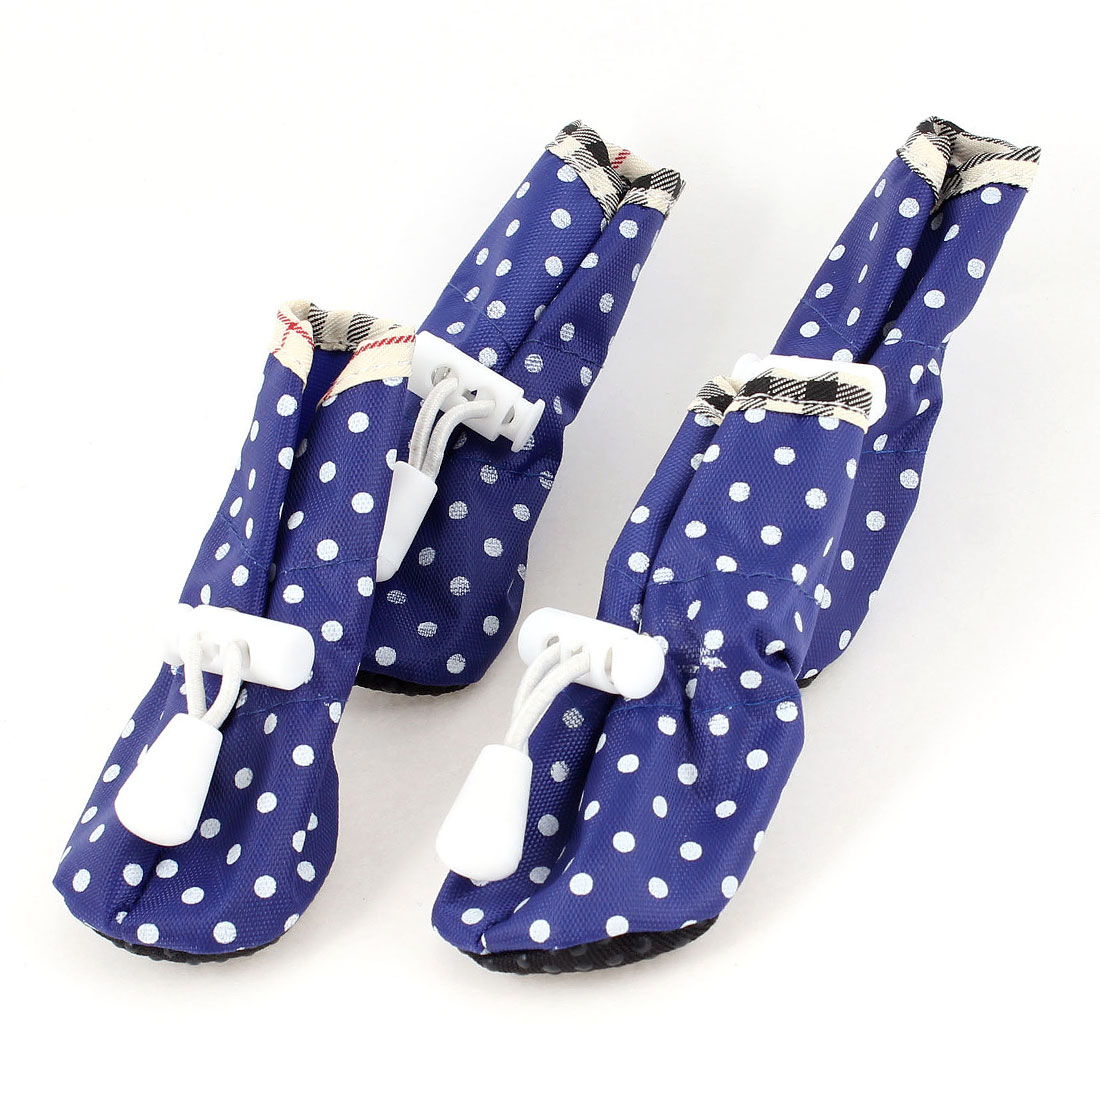 4 Pcs Autumn Nonslip Rubber Sole Pet Puppy Boots Shoes XS Size 3 Blue